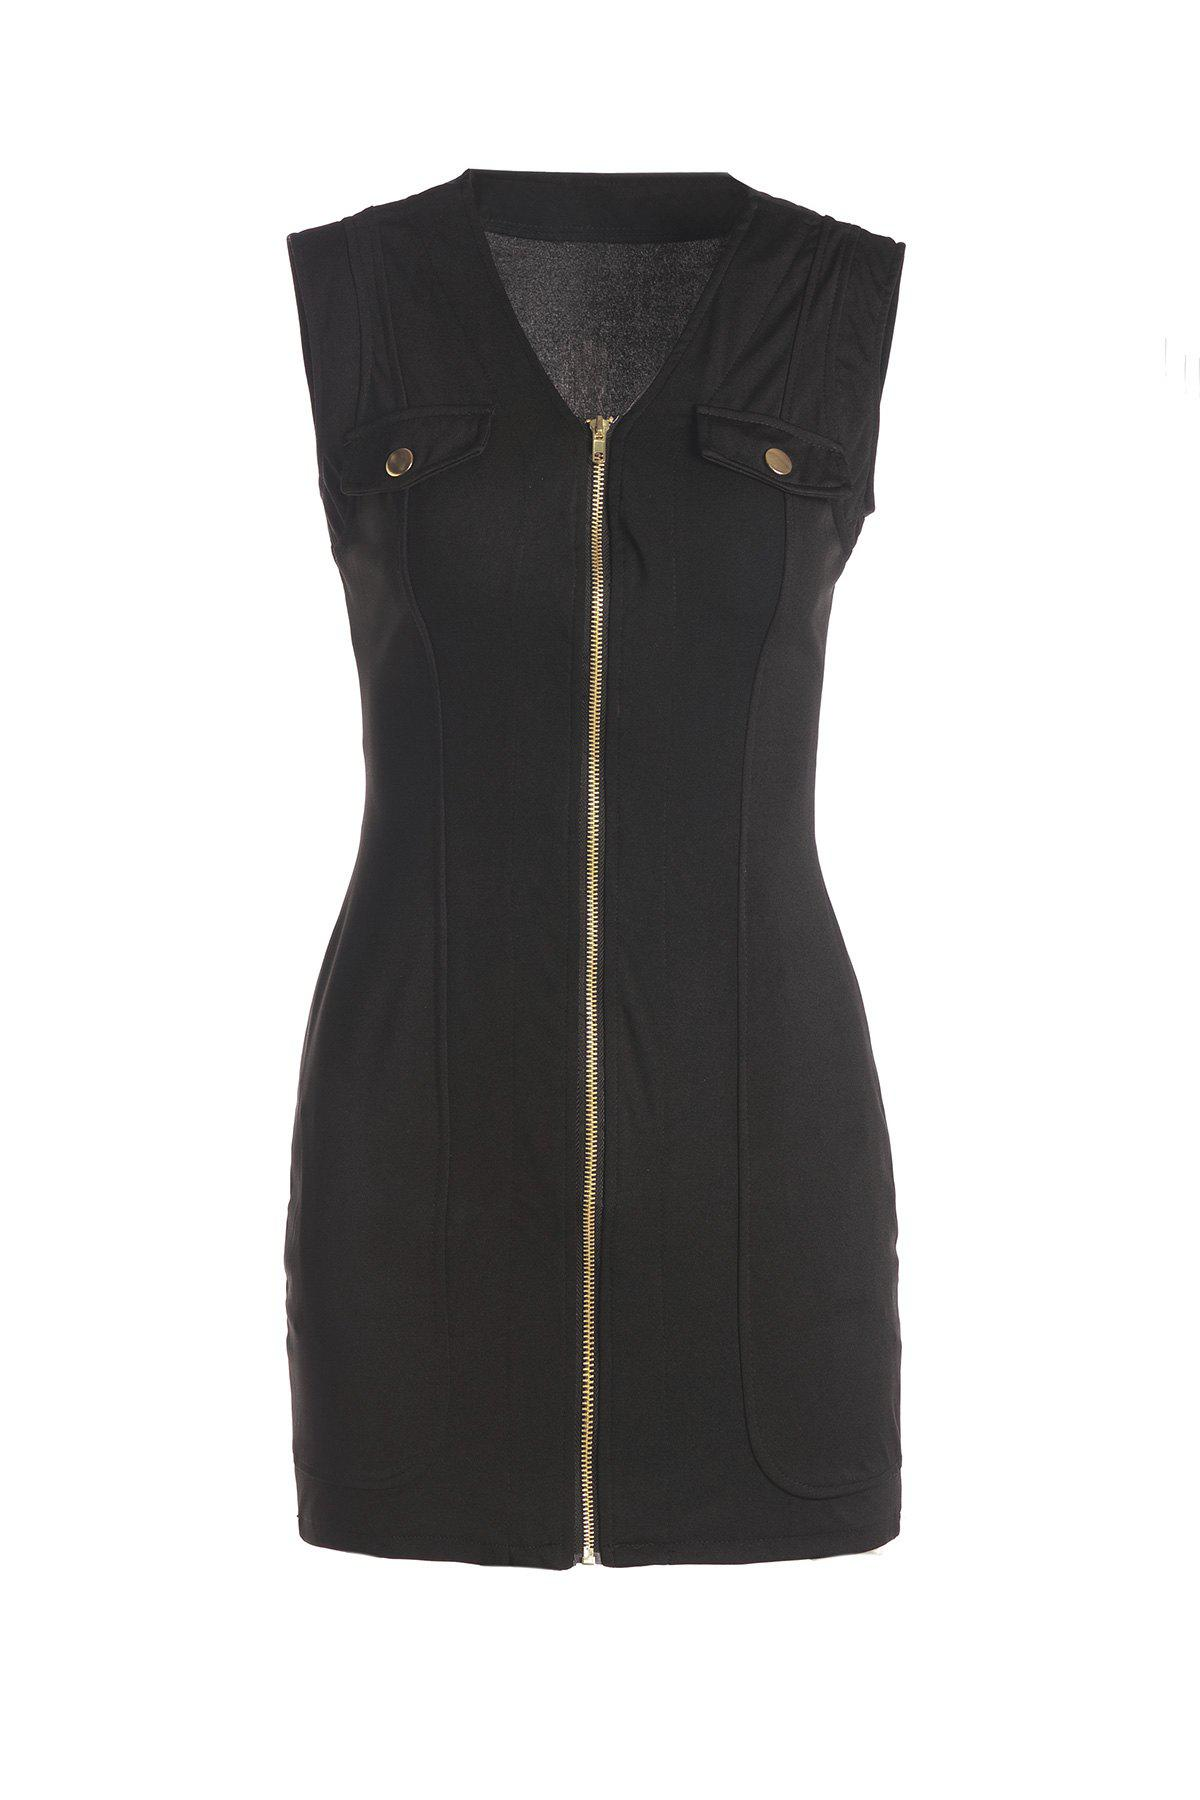 Sexy Plunging Neck Sleeveless Zip Up Women's Black Mini Dress - BLACK ONE SIZE(FIT SIZE XS TO M)